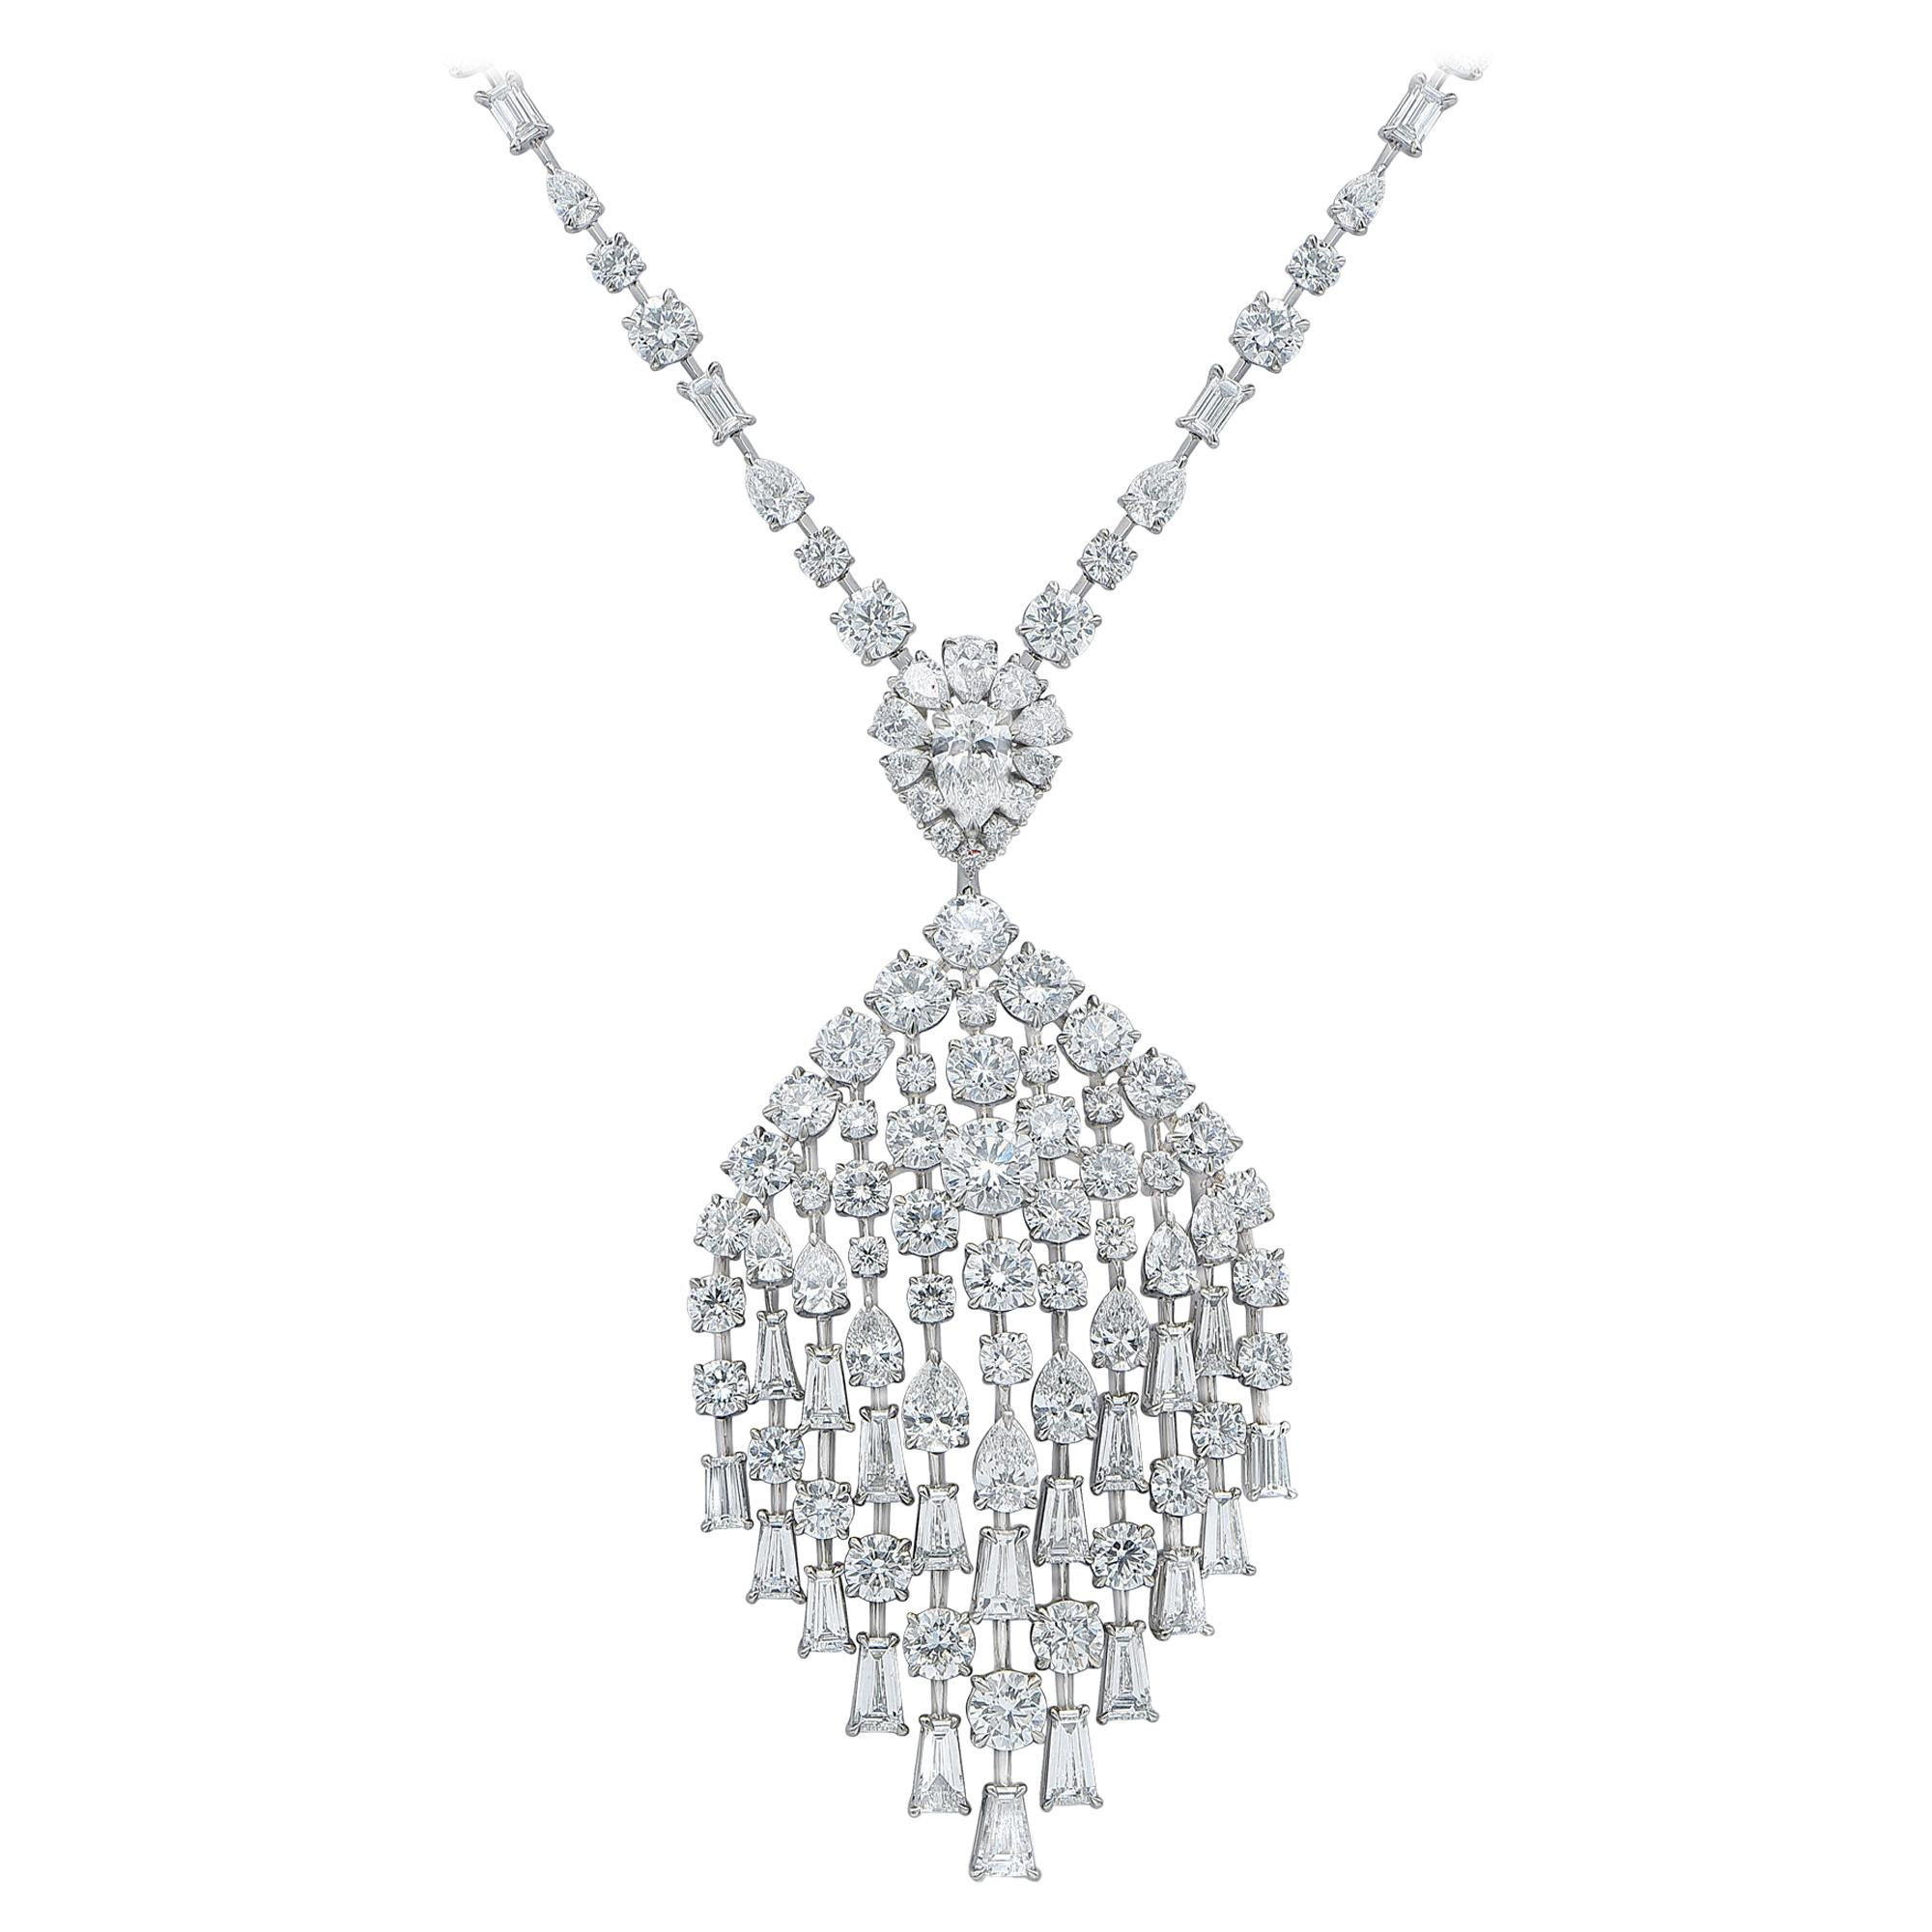 Harakh GIA Certified 33.15 CT Colorless Diamond 18KT White Gold Peacock Necklace